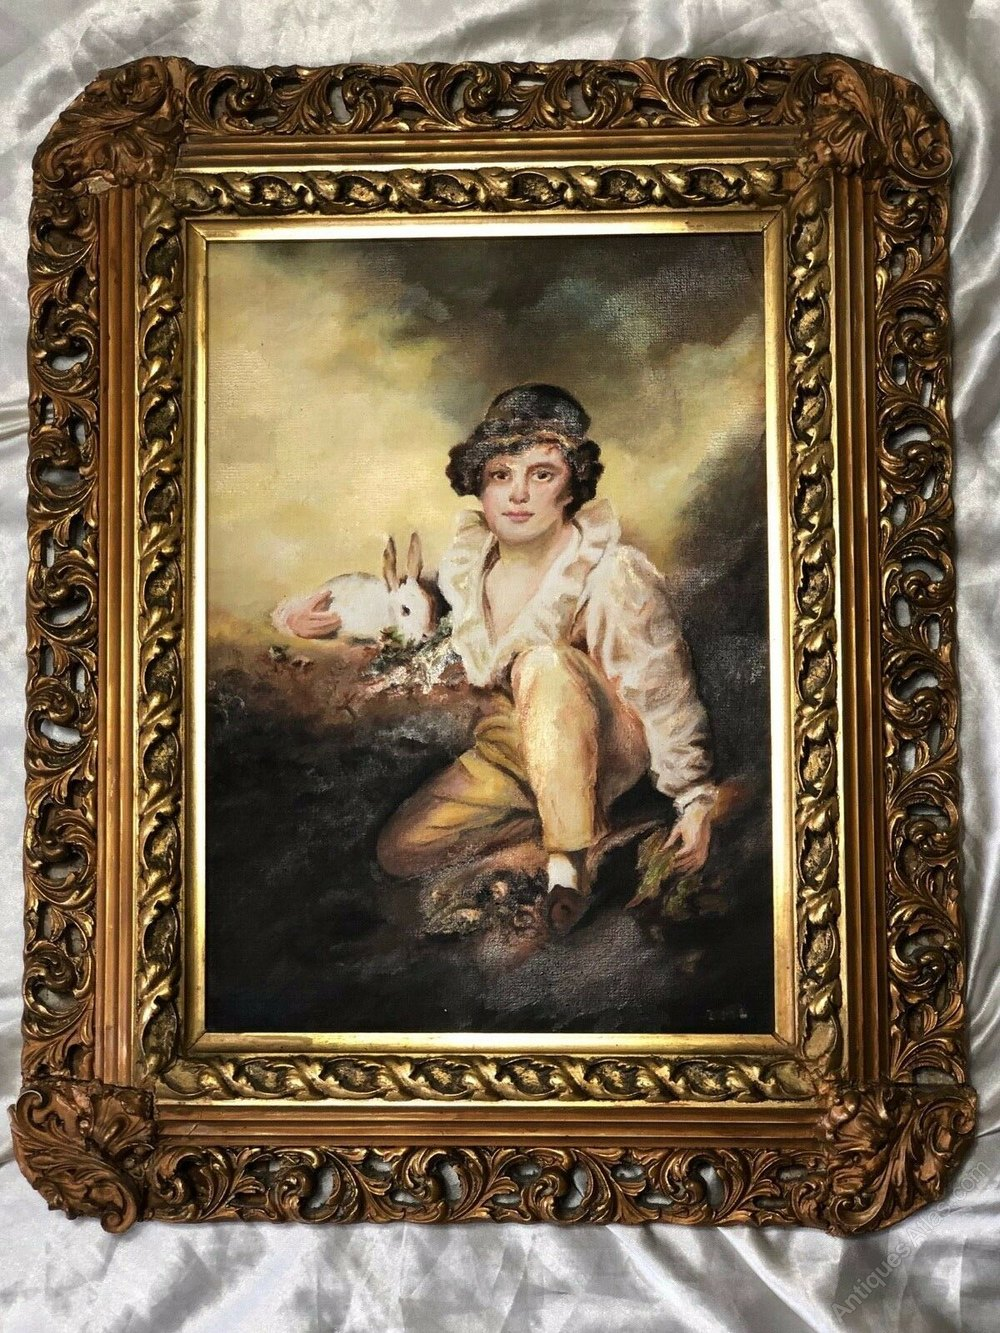 Antique Oil on Canvas Boy and Parrot Genre Painting